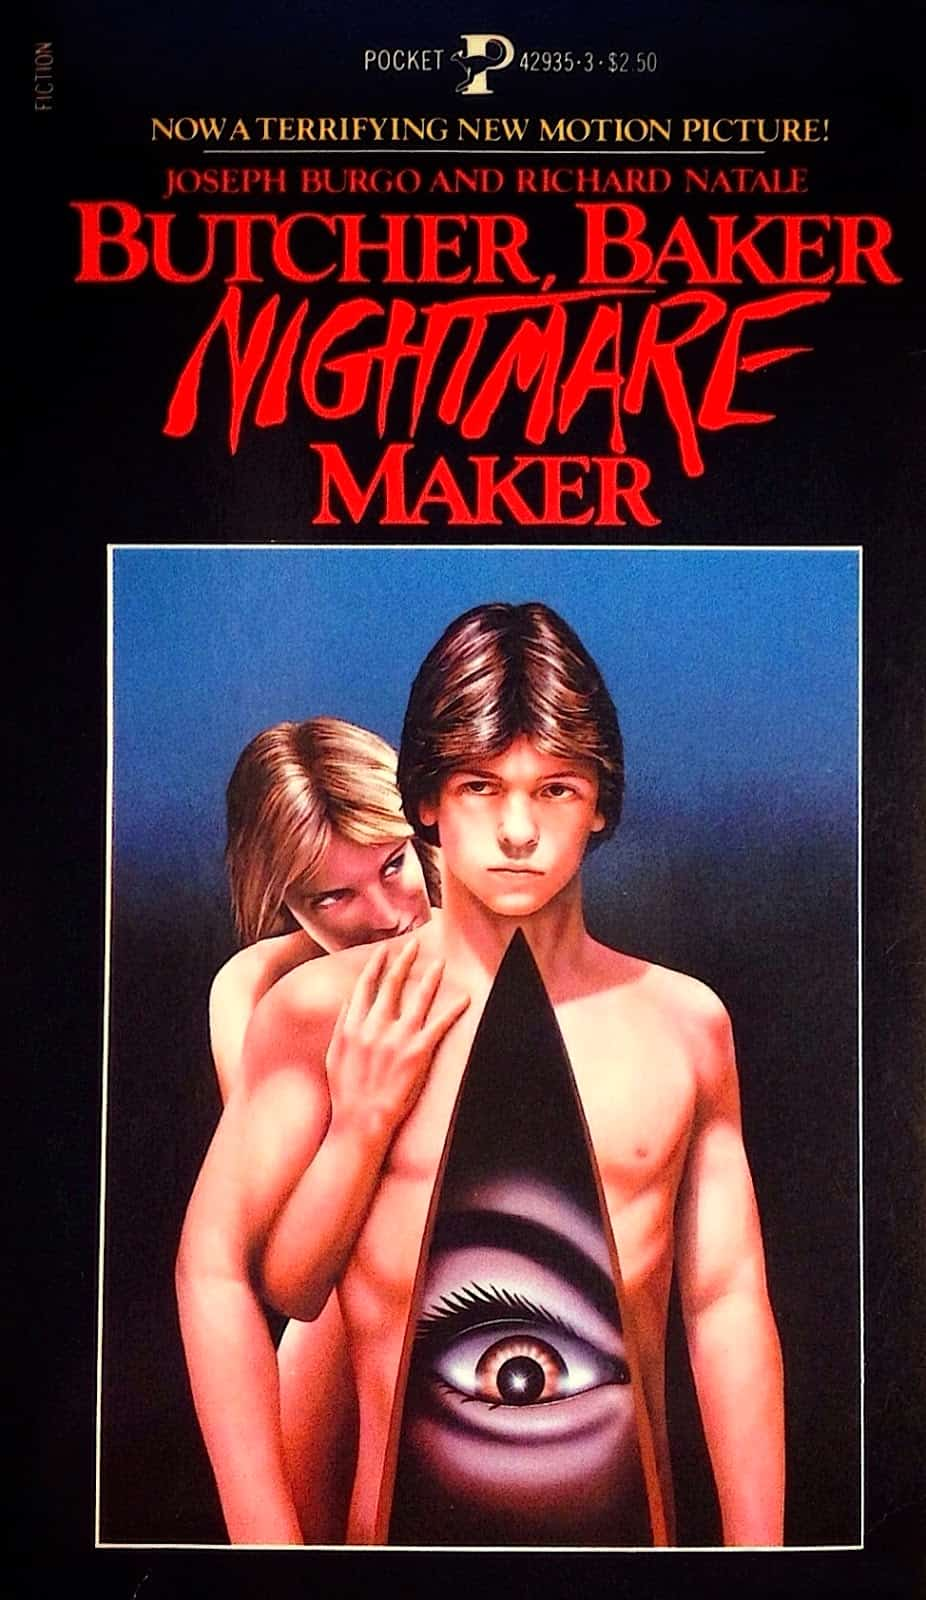 Butcher, Baker, Nightmare Maker (1982)